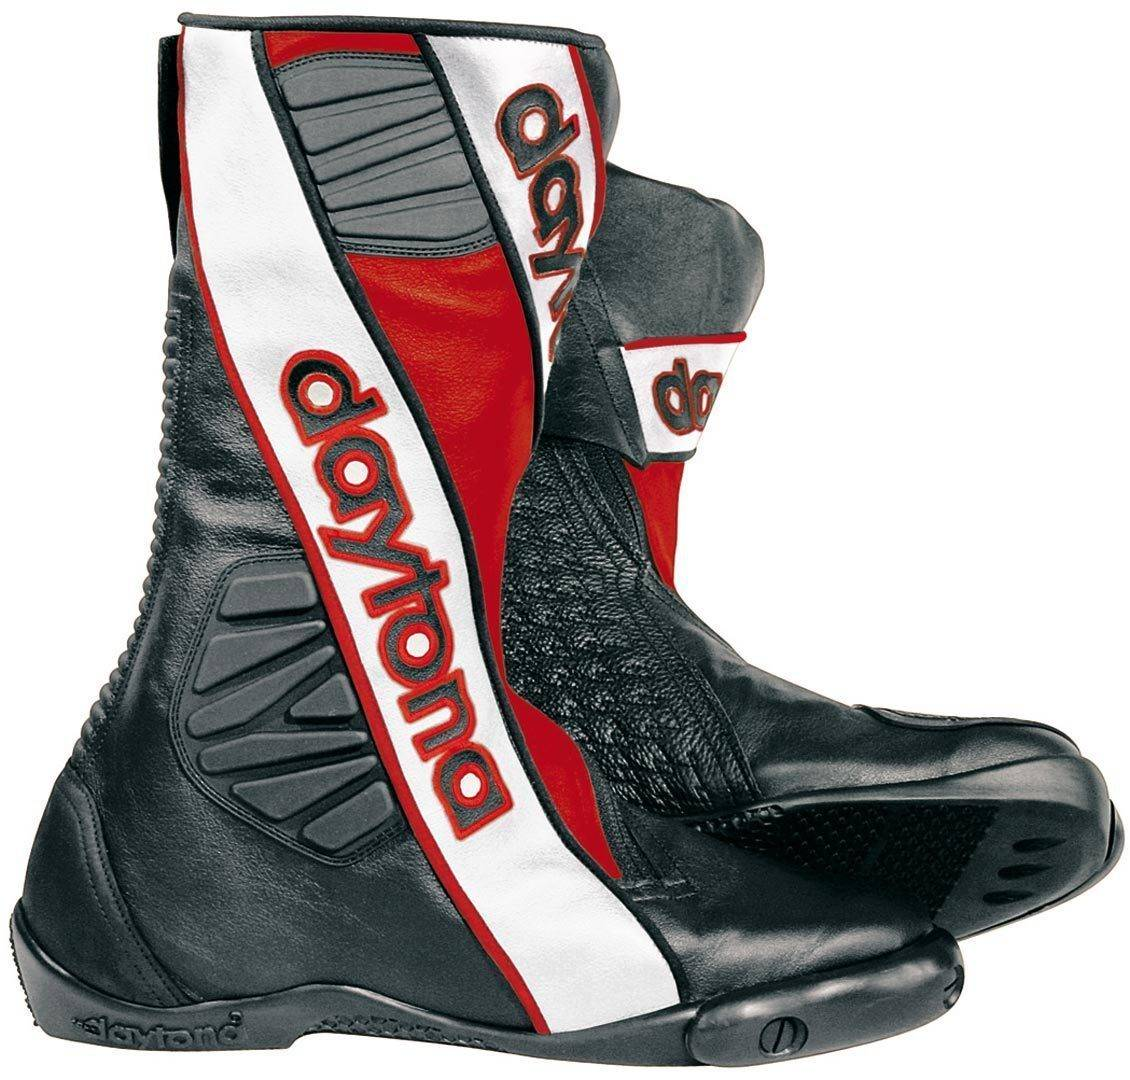 Daytona Security Evo G3 Motorcycle Boots  - Black Red - Size: 41